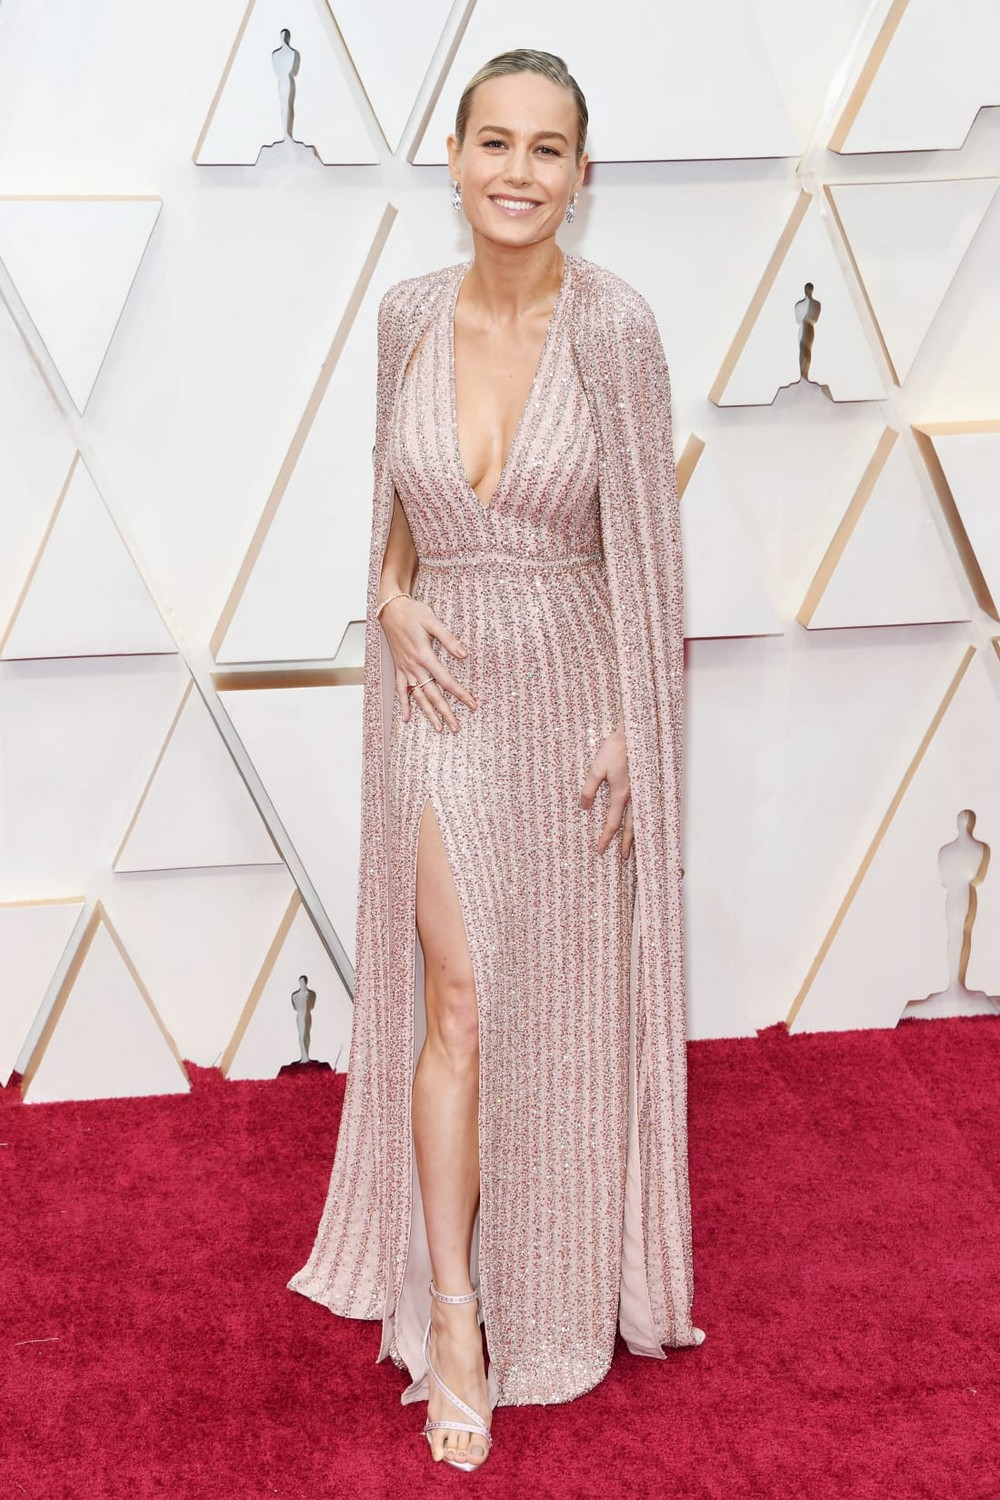 Oscars 2020 Sleeves were Certainly in Fashion at the Red Carpet 5 oscars 2020 Oscars 2020: Statement Sleeves in Fashion on the Red Carpet Oscars 2020 Sleeves were Certainly in Fashion at the Red Carpet 5